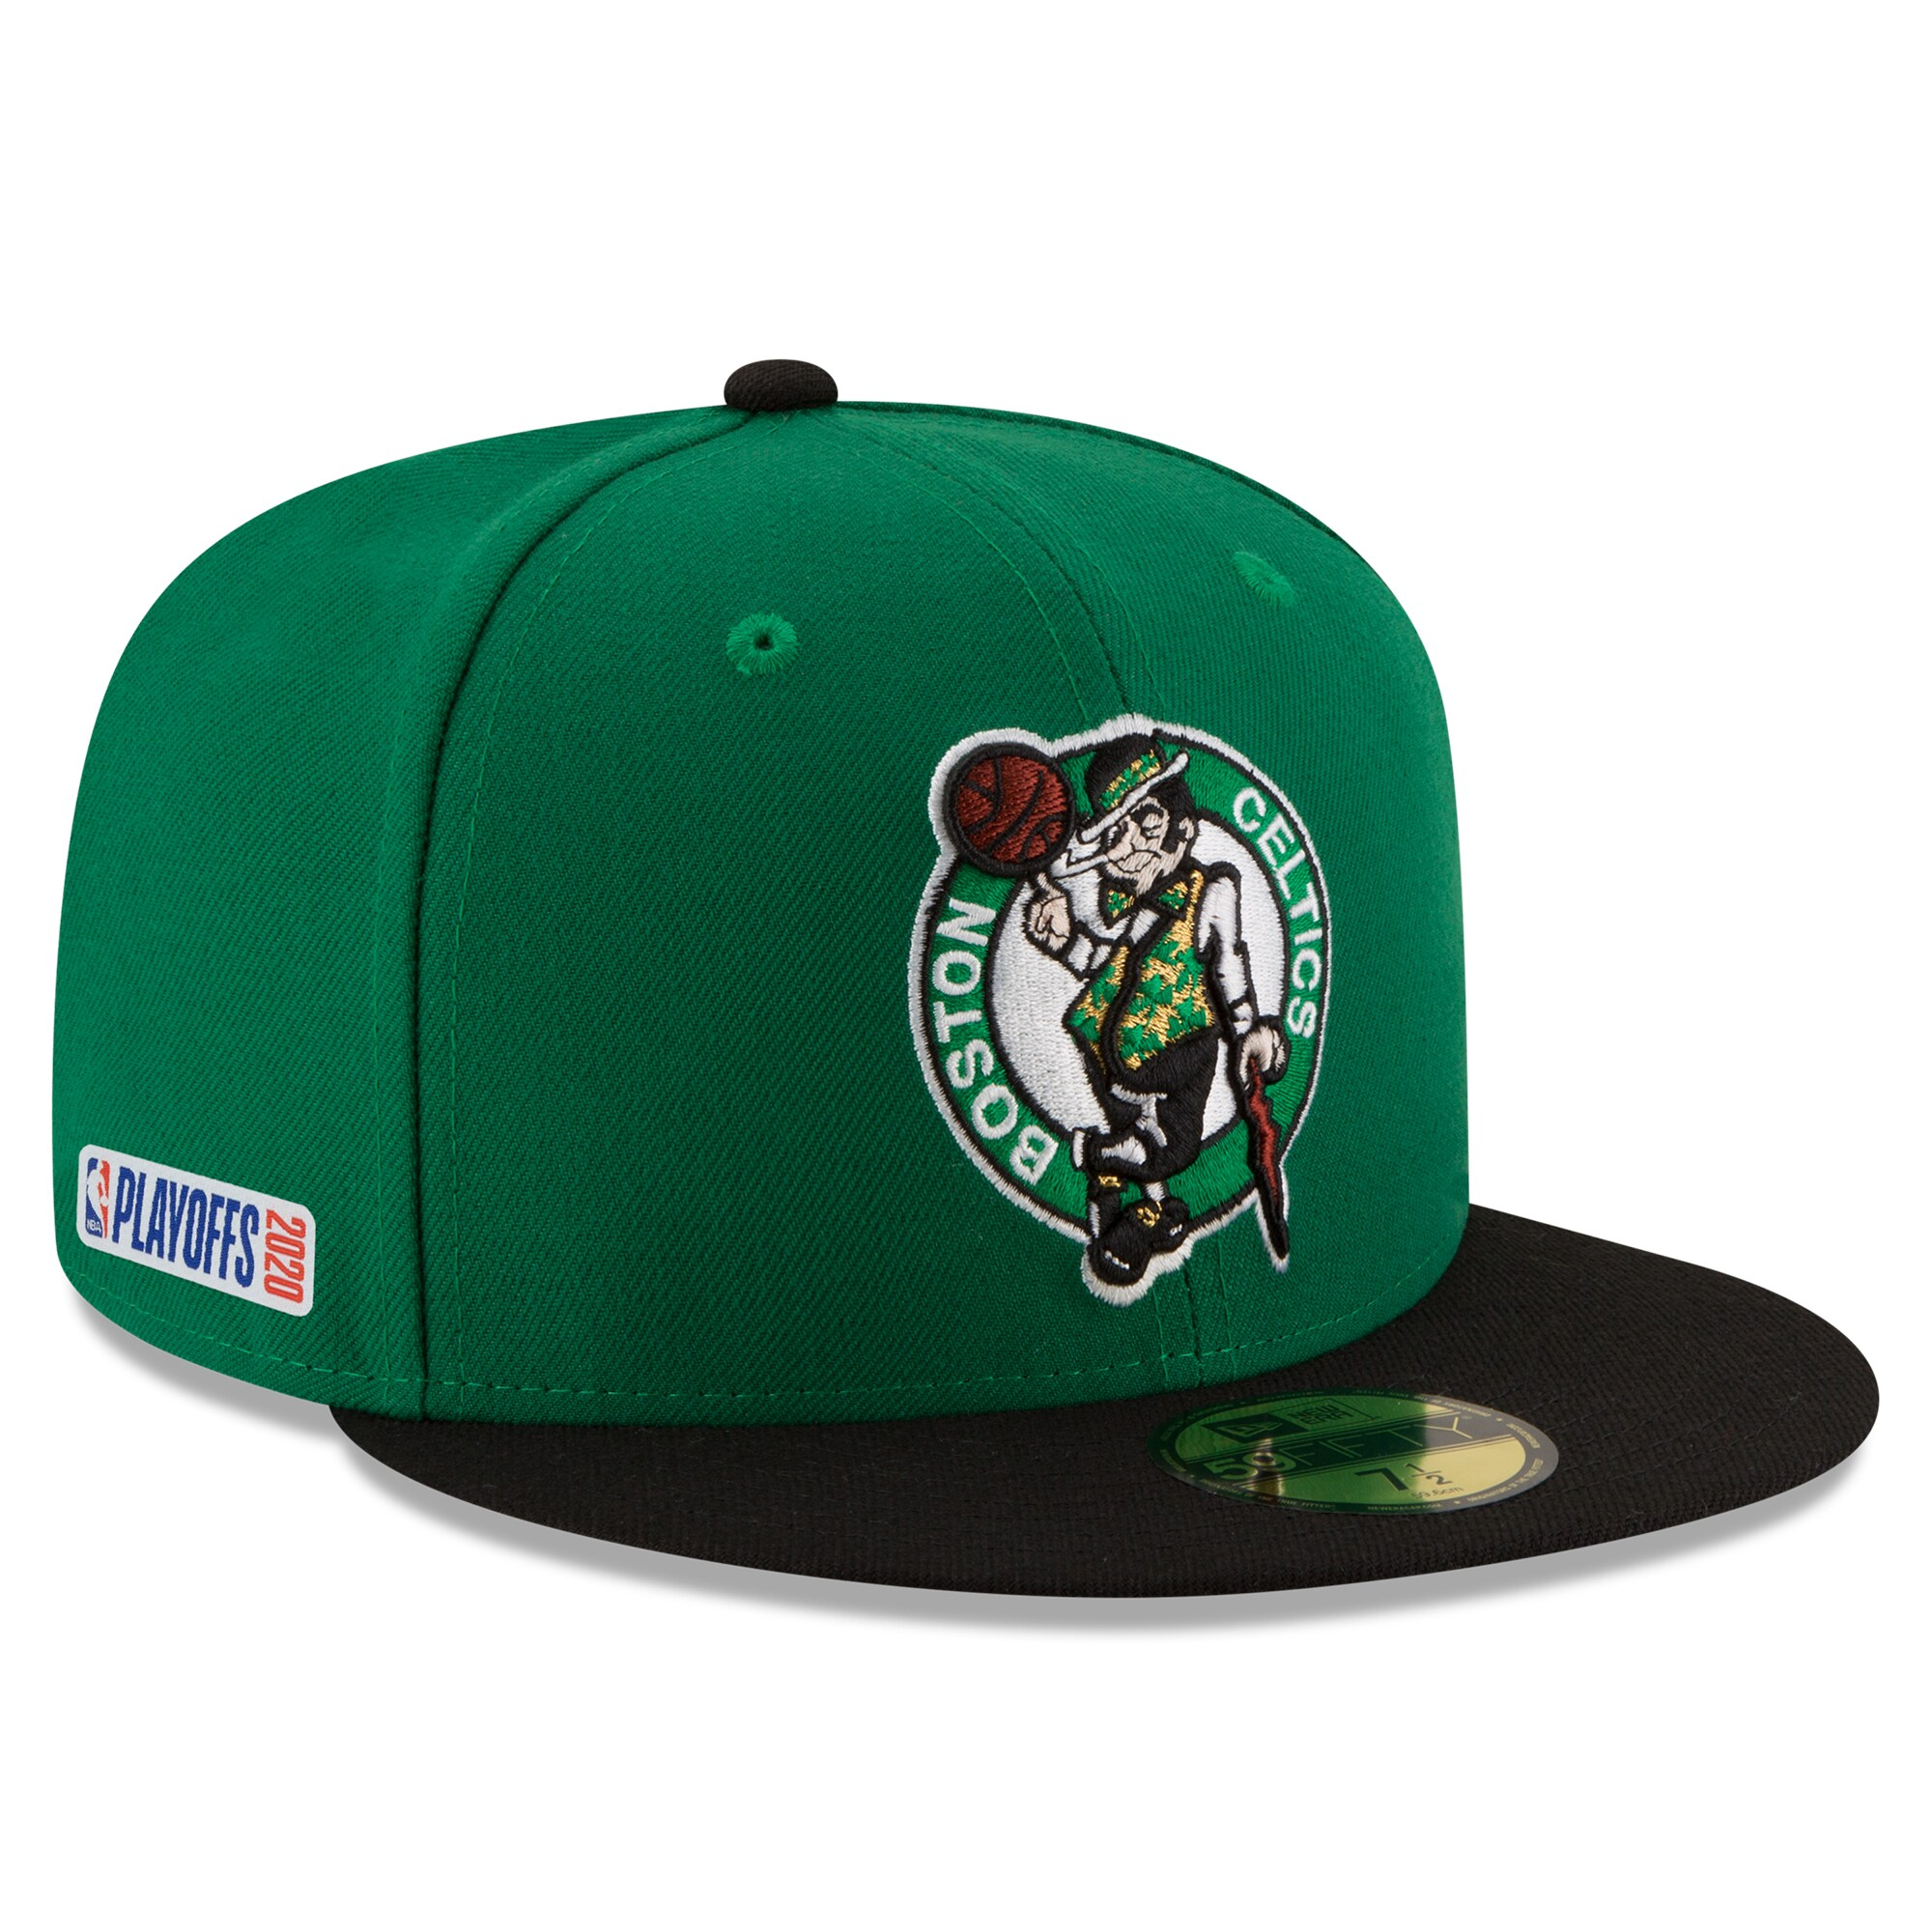 Boston Celtics New Era 2020 NBA Playoffs Bound 59FIFTY Fitted Hat - Green